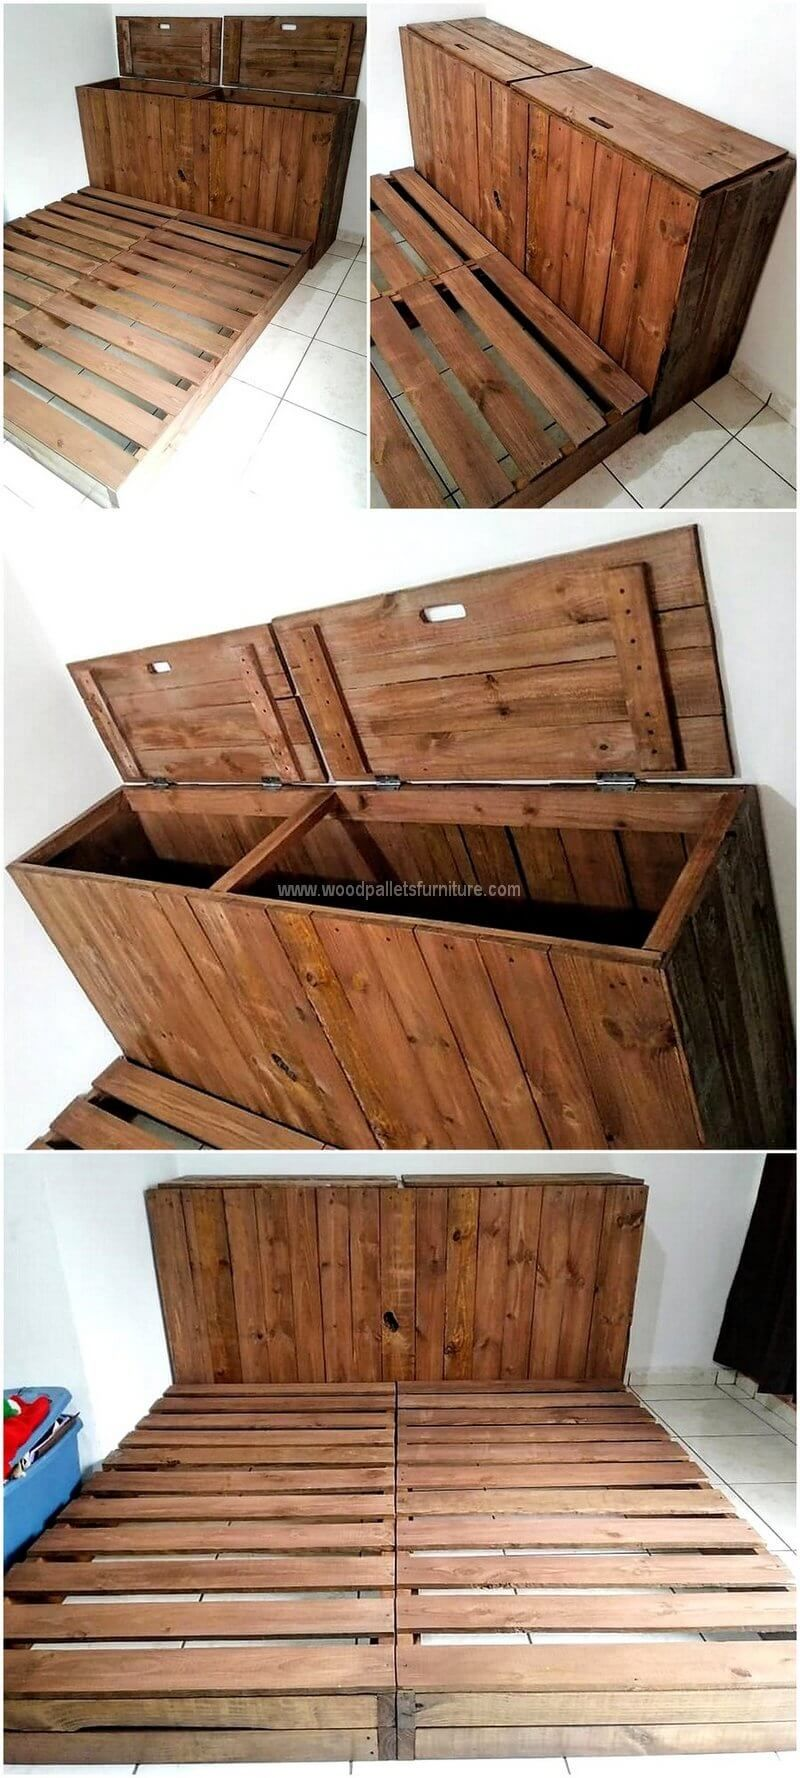 Trending Diy Ideas For Wood Pallets Recycling Wood Pallet Recycling Wood Pallets Pallet Furniture For Sale